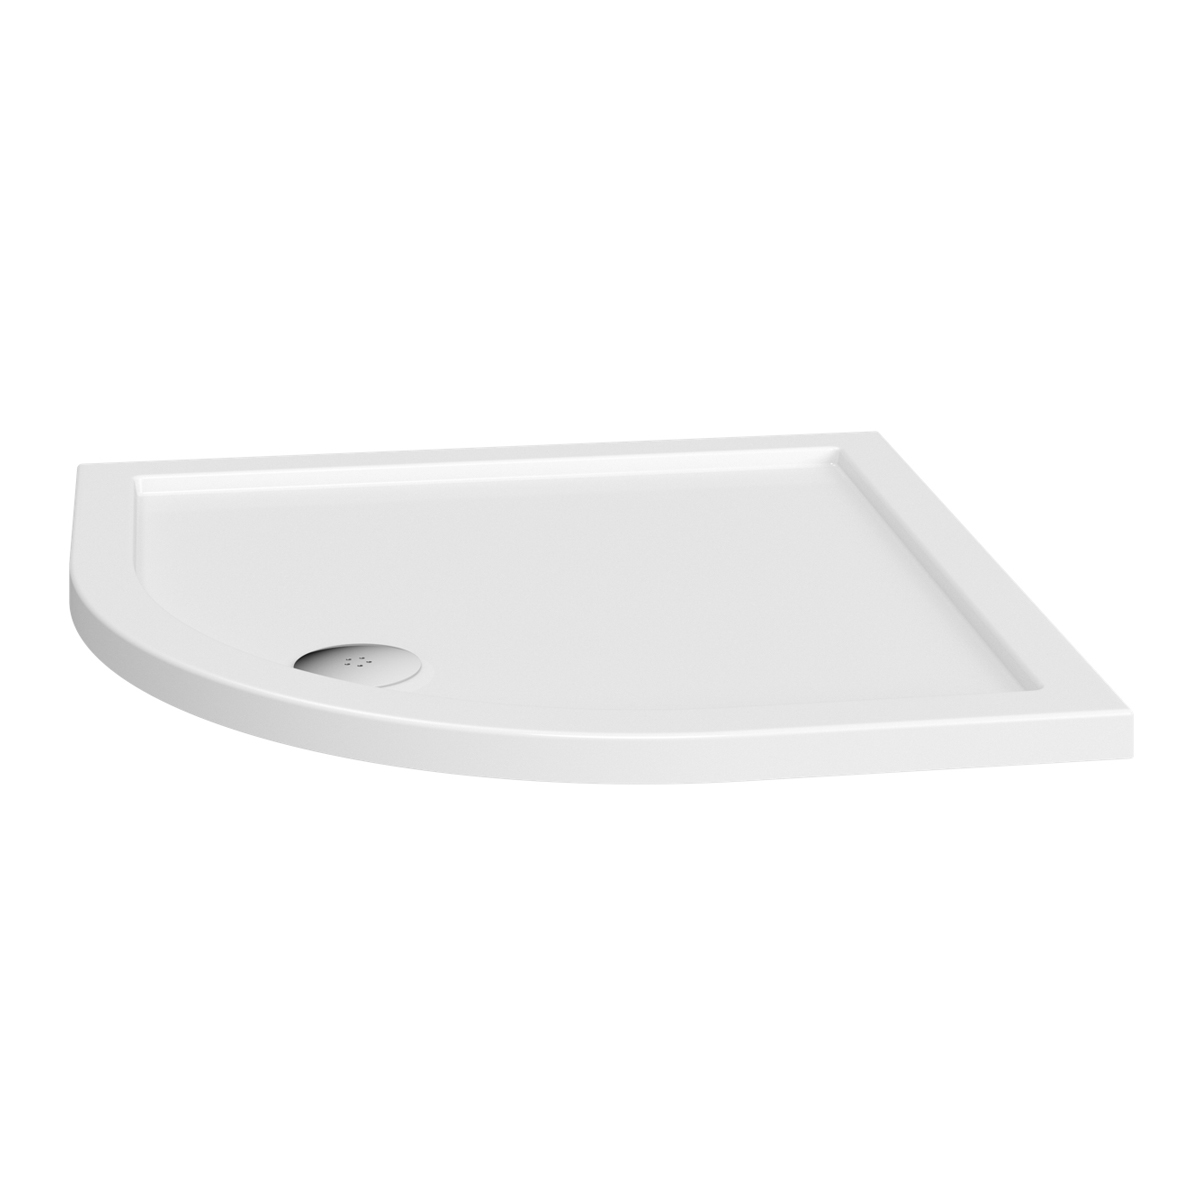 Image of Quadrant Pearlstone Shower Tray 800x800